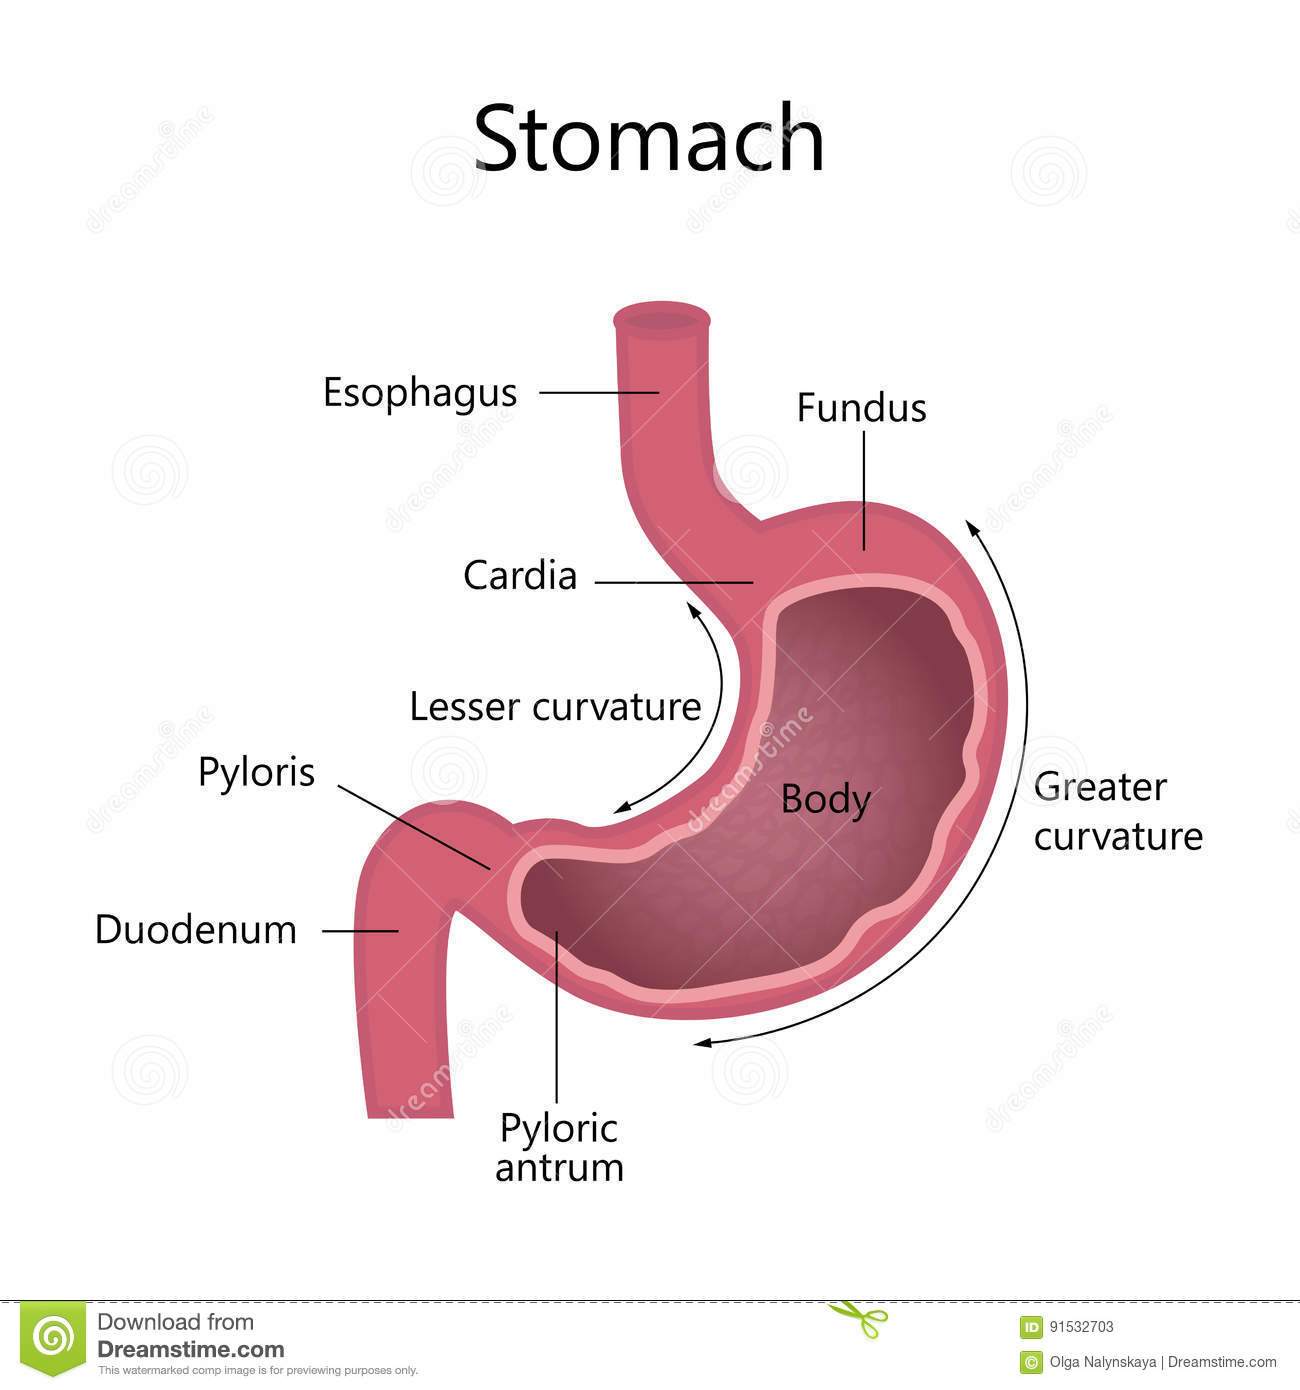 Anatomy of the human stomach